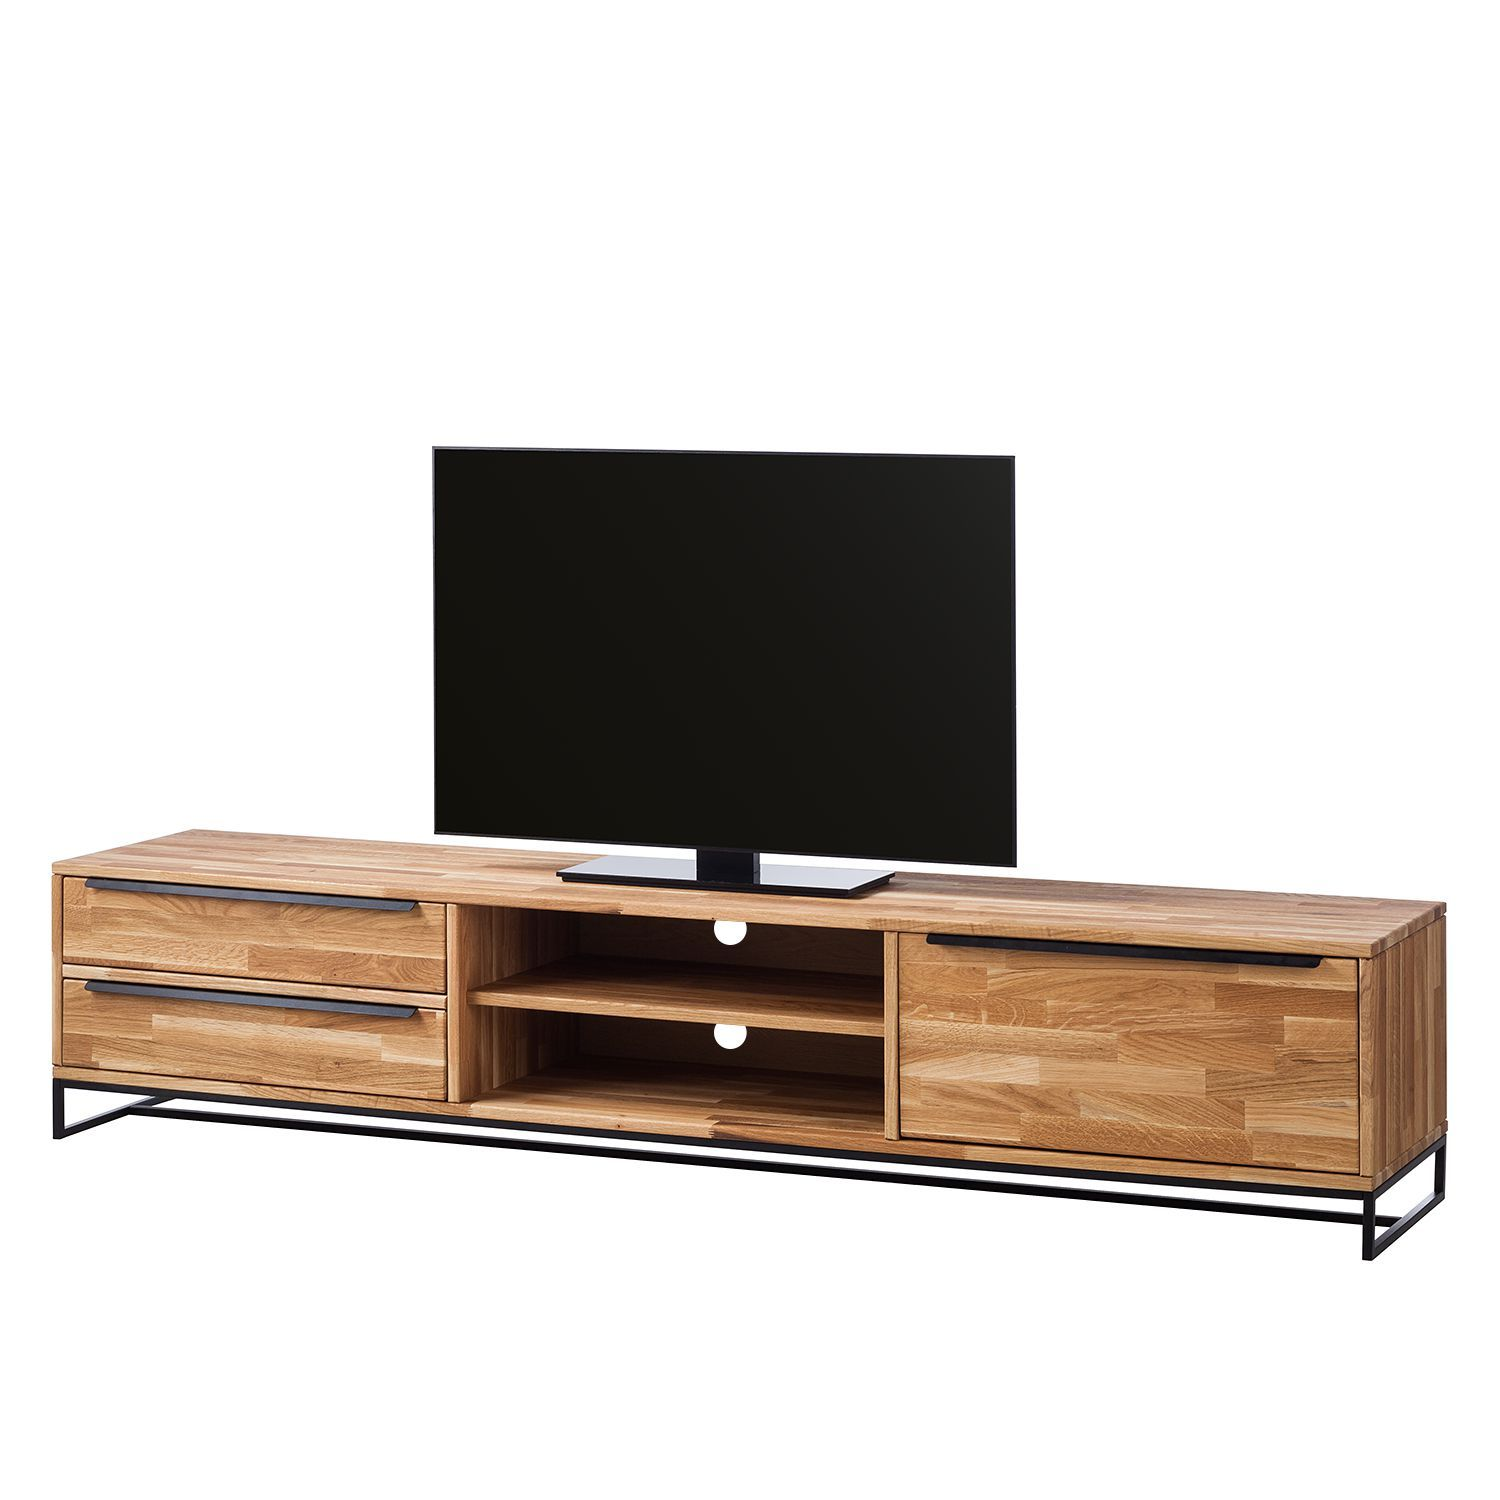 pin von ladendirekt auf tv hifi m bel pinterest tv hifi m bel hifi m bel und tv lowboard. Black Bedroom Furniture Sets. Home Design Ideas